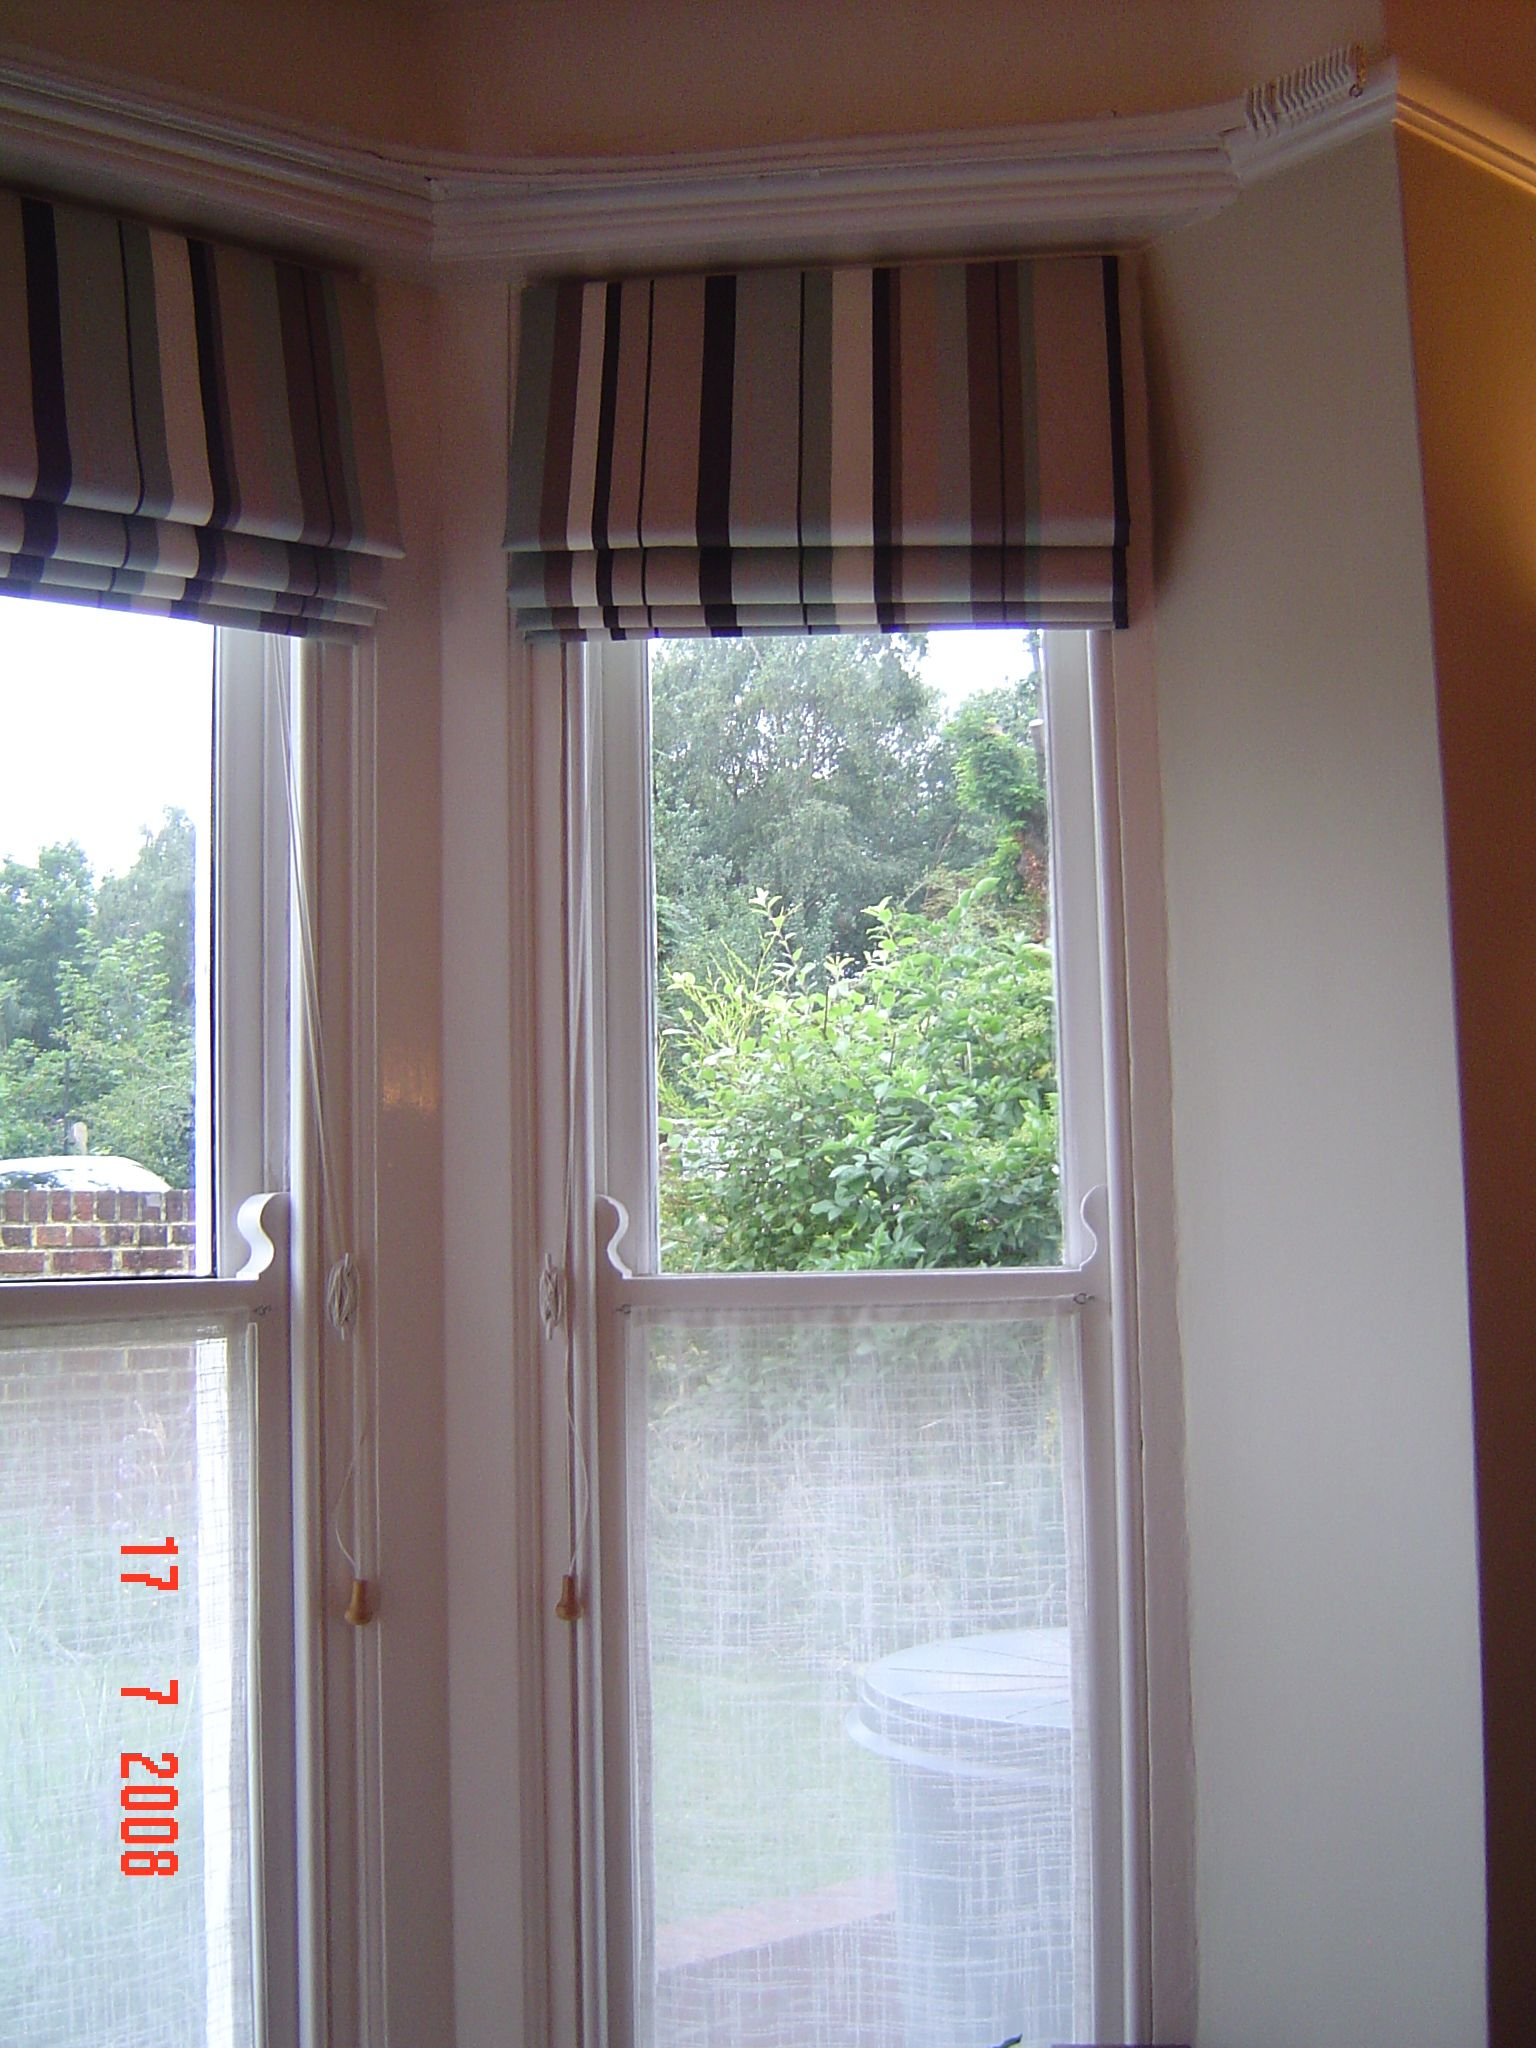 The Bay Window Is More Than A Simple Ociated With Victorian Style Architecture This Type Stands Out In Vertical Plane Of